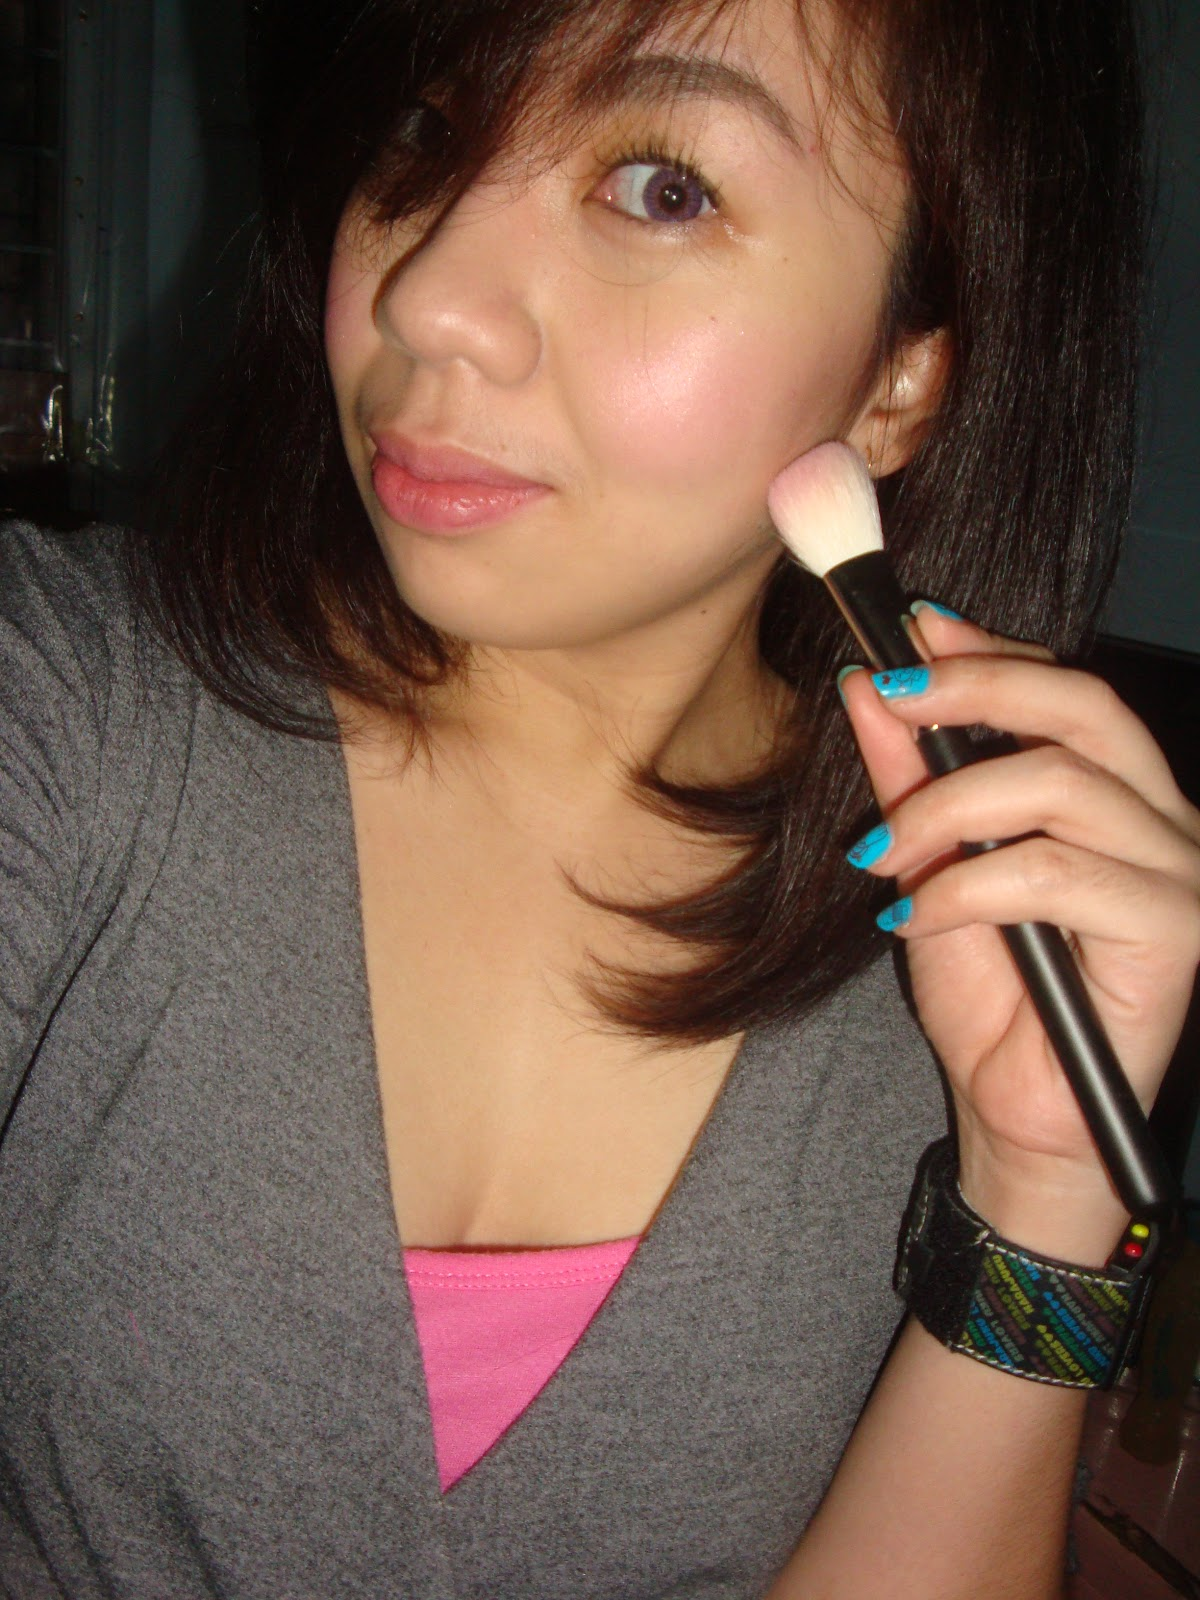 Mac 168 Large Angled Contour Brush: Your Little Beauty Bag: Brush Review:Mac 168 Angled